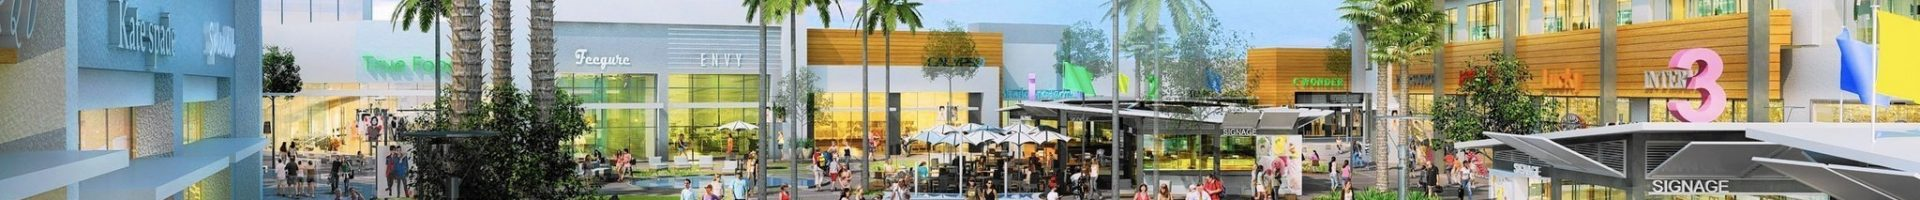 The Point in El Segundo: Food, Shopping, Chill Vibes and On Point